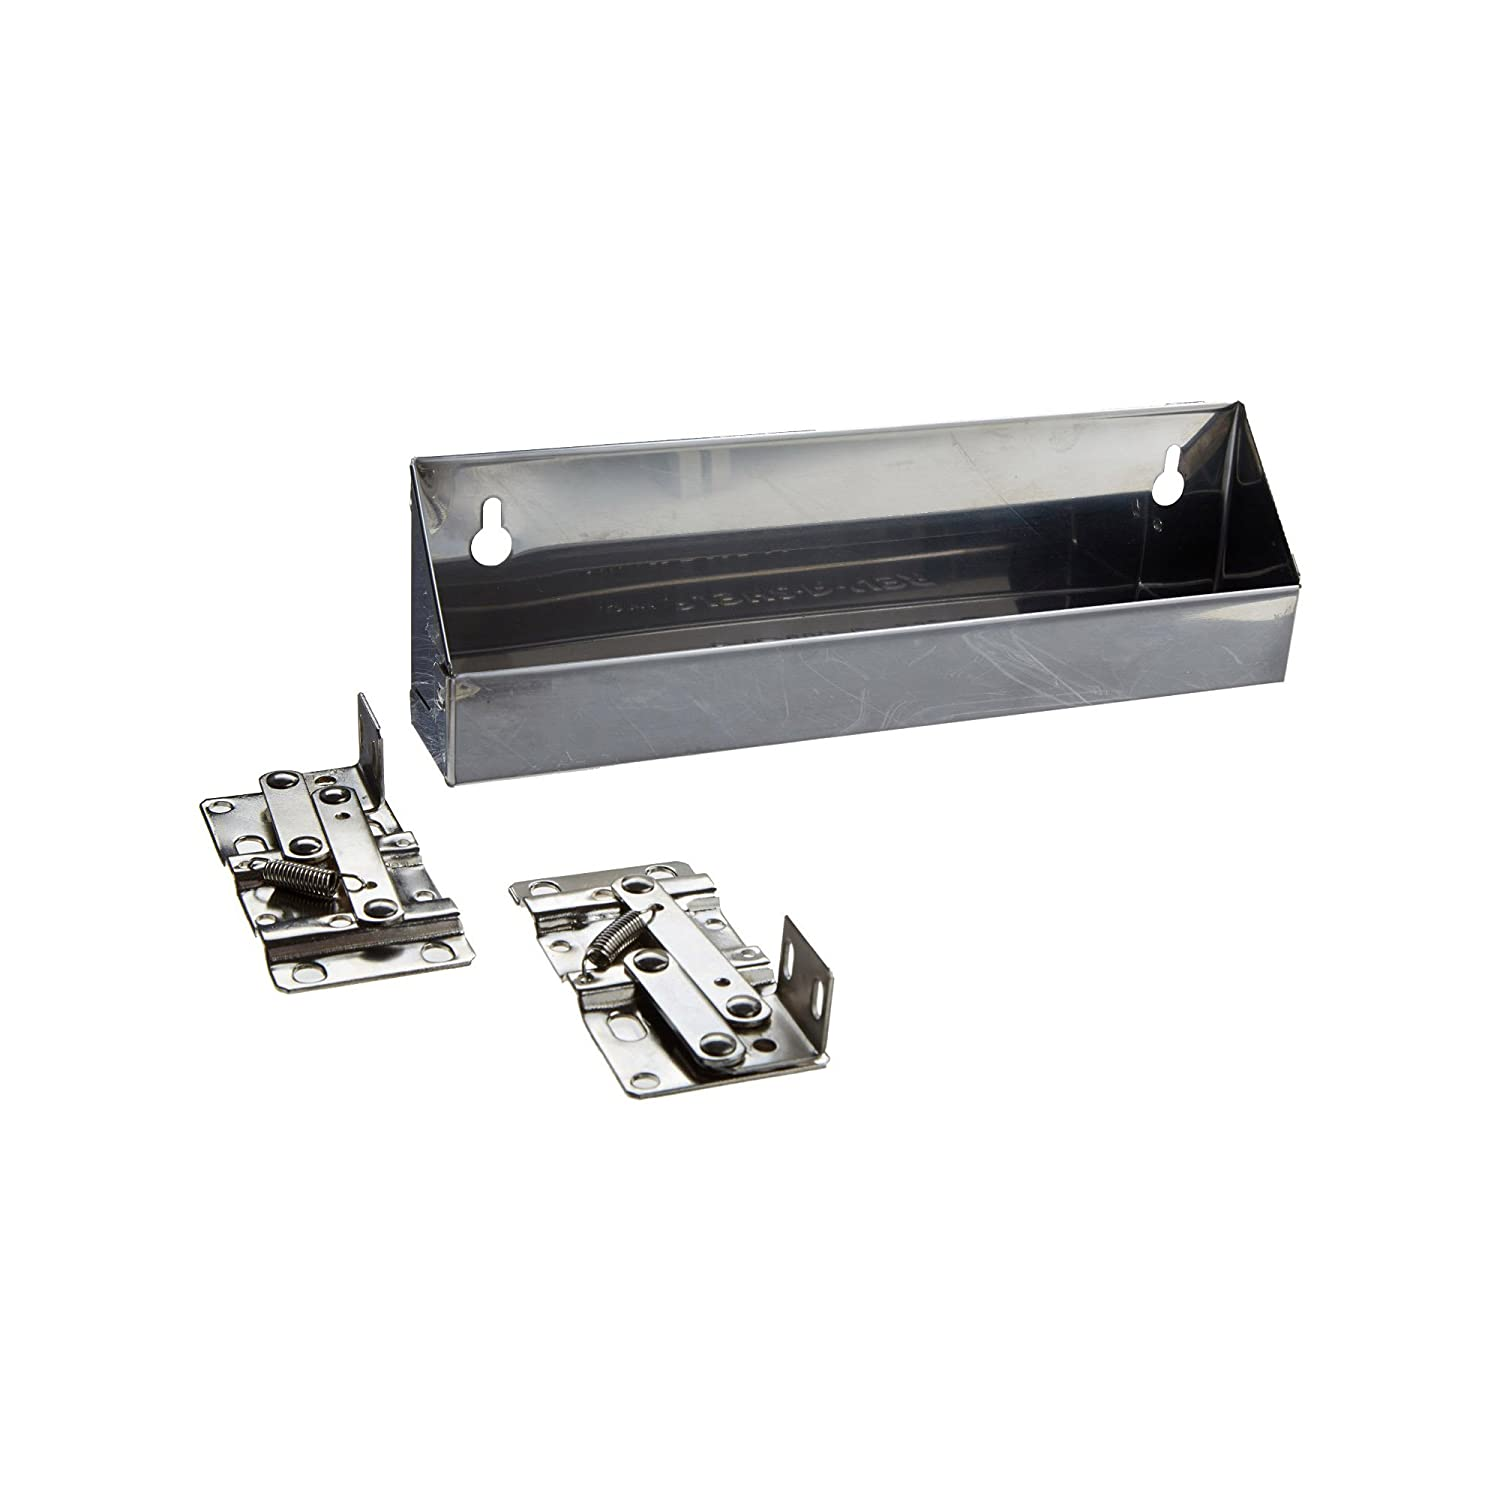 Rev-A-Shelf 6541-10-52 10 Stainless Tip Out Sink Front Tray, Silver